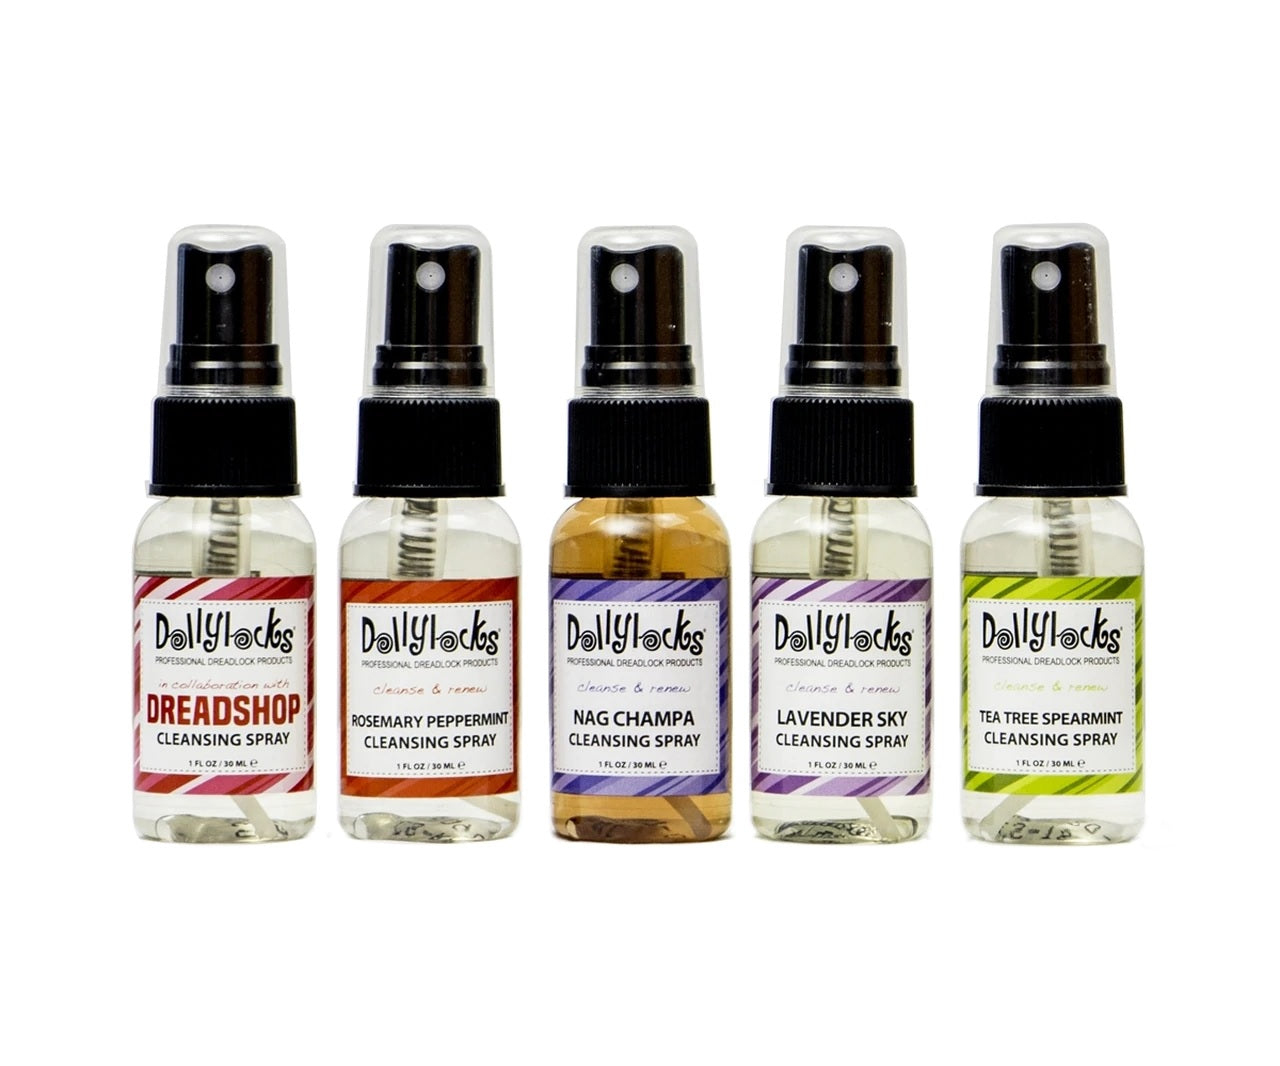 Dollylocks-Dreadlocks Reinigungsspray Reisegröße Set (5x 1oz)